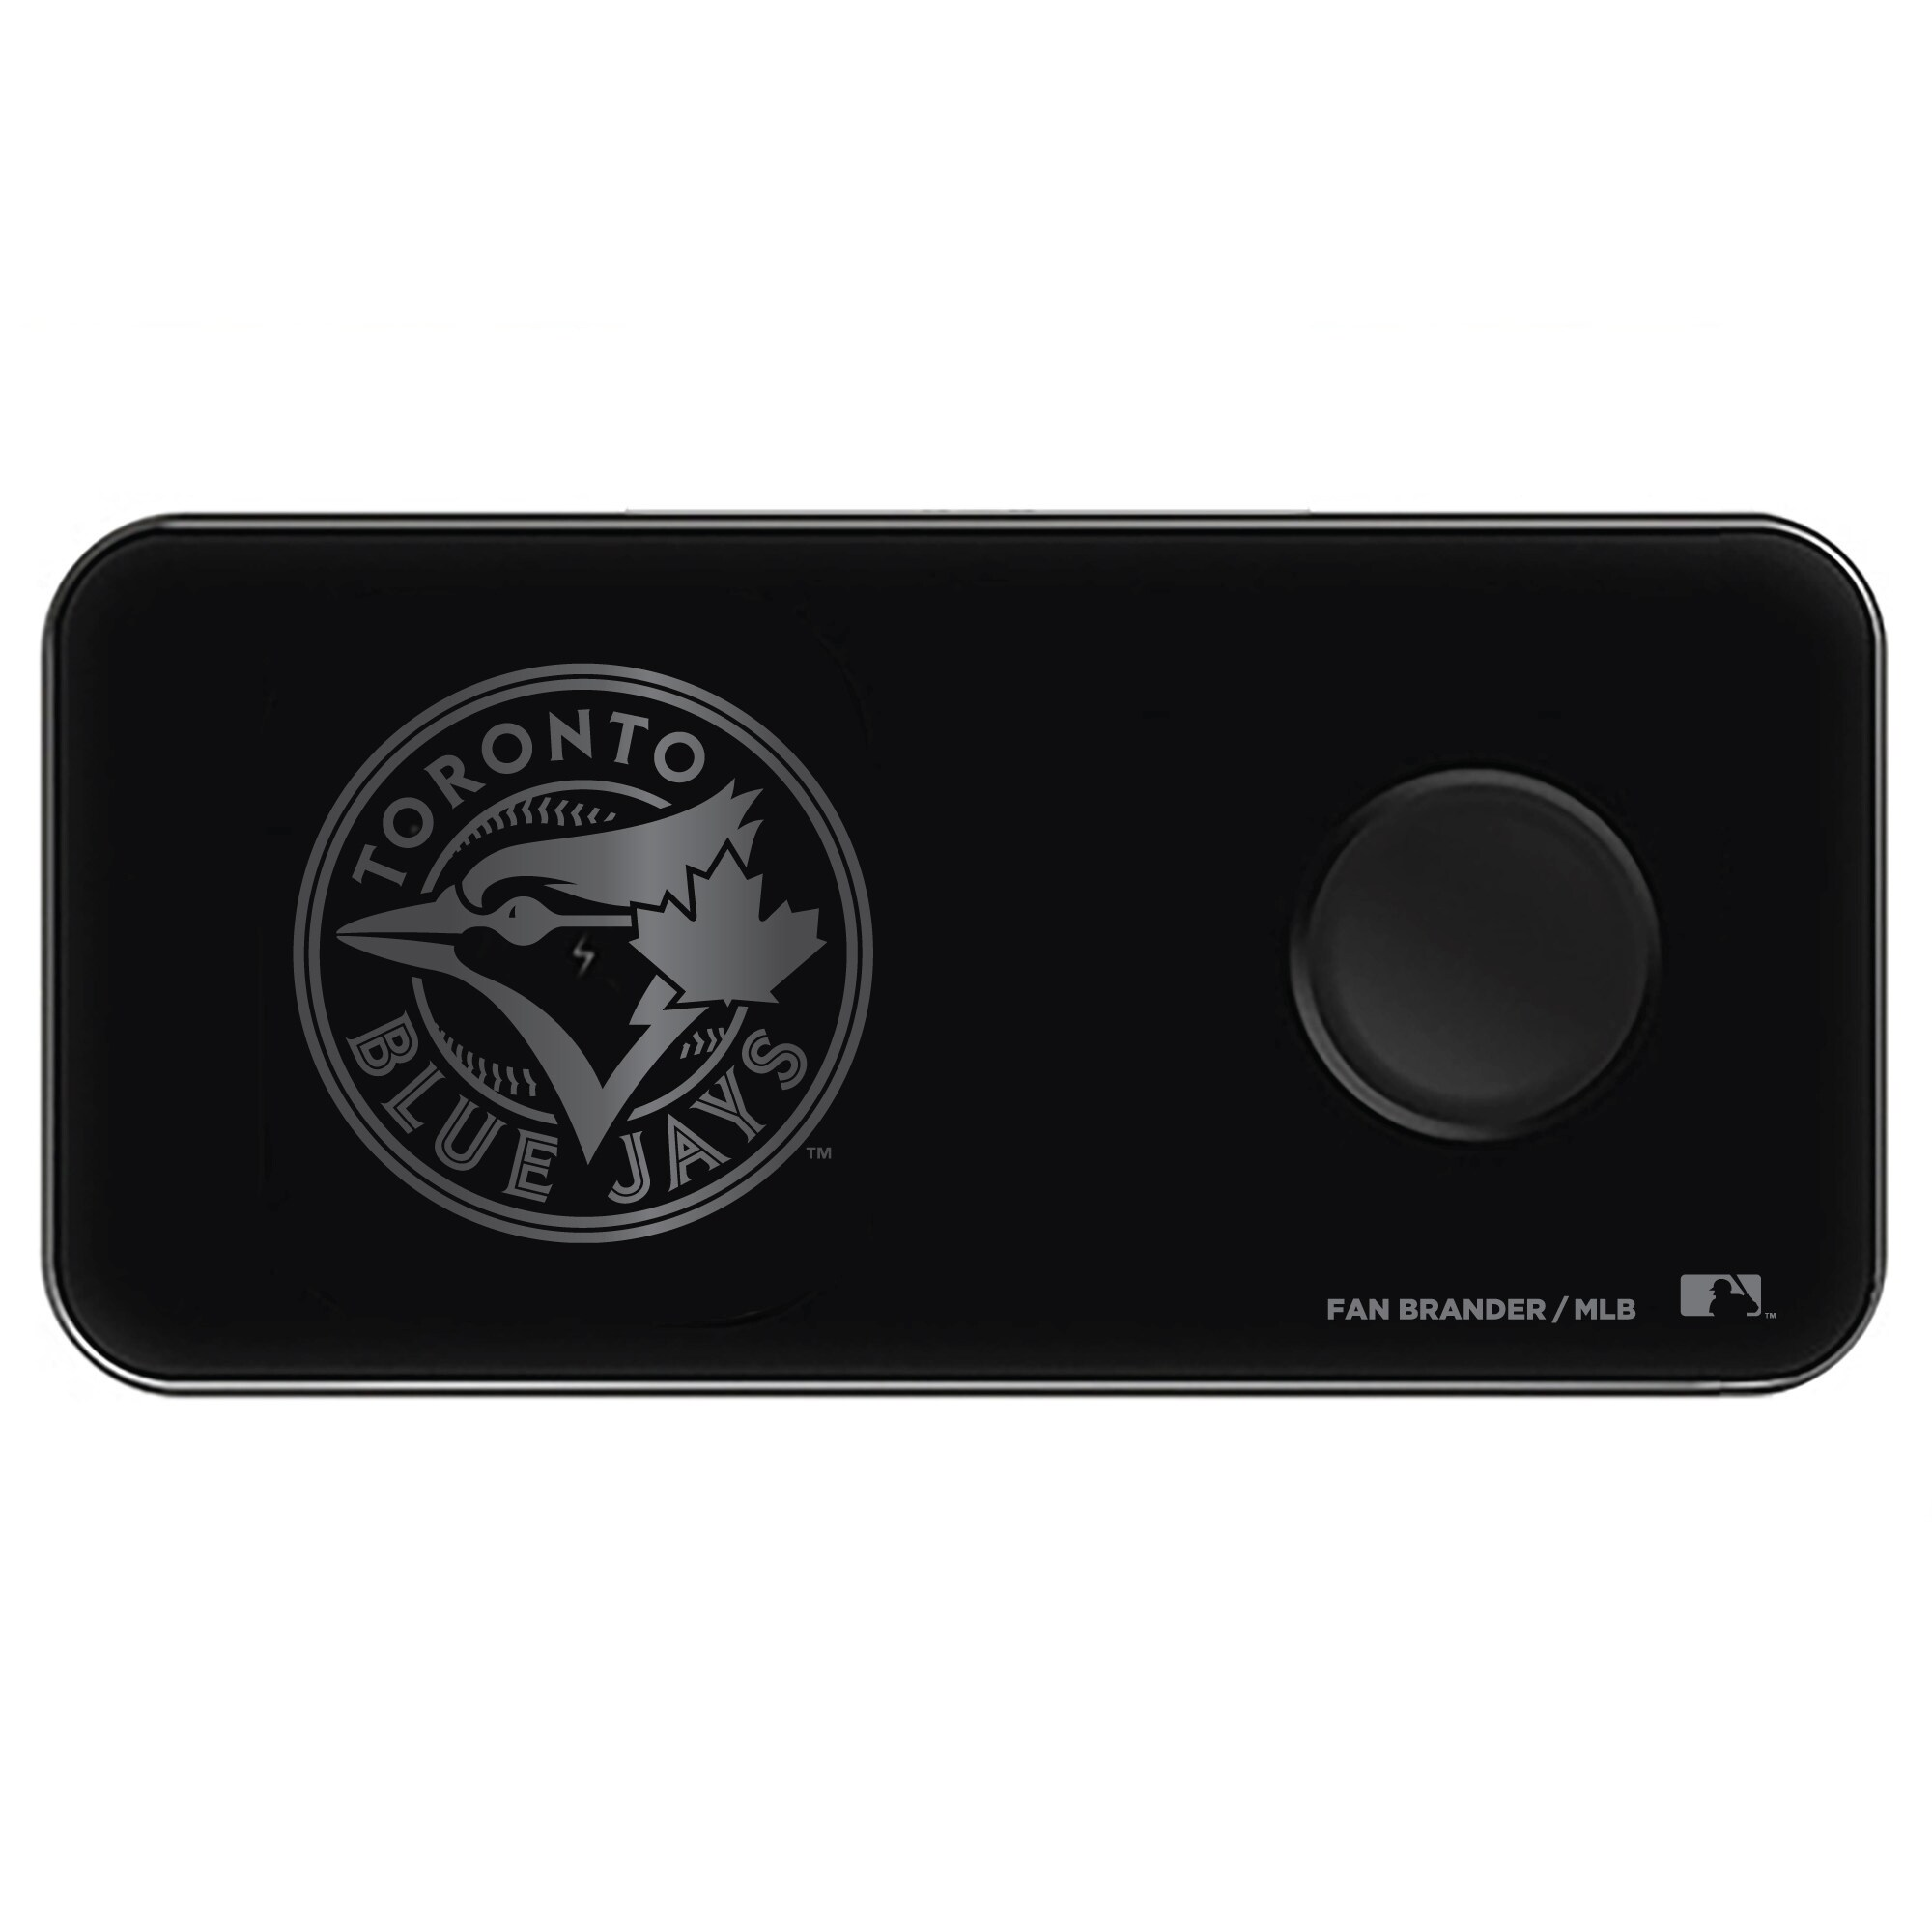 Toronto Blue Jays 3-in-1 Glass Wireless Charge Pad - Black